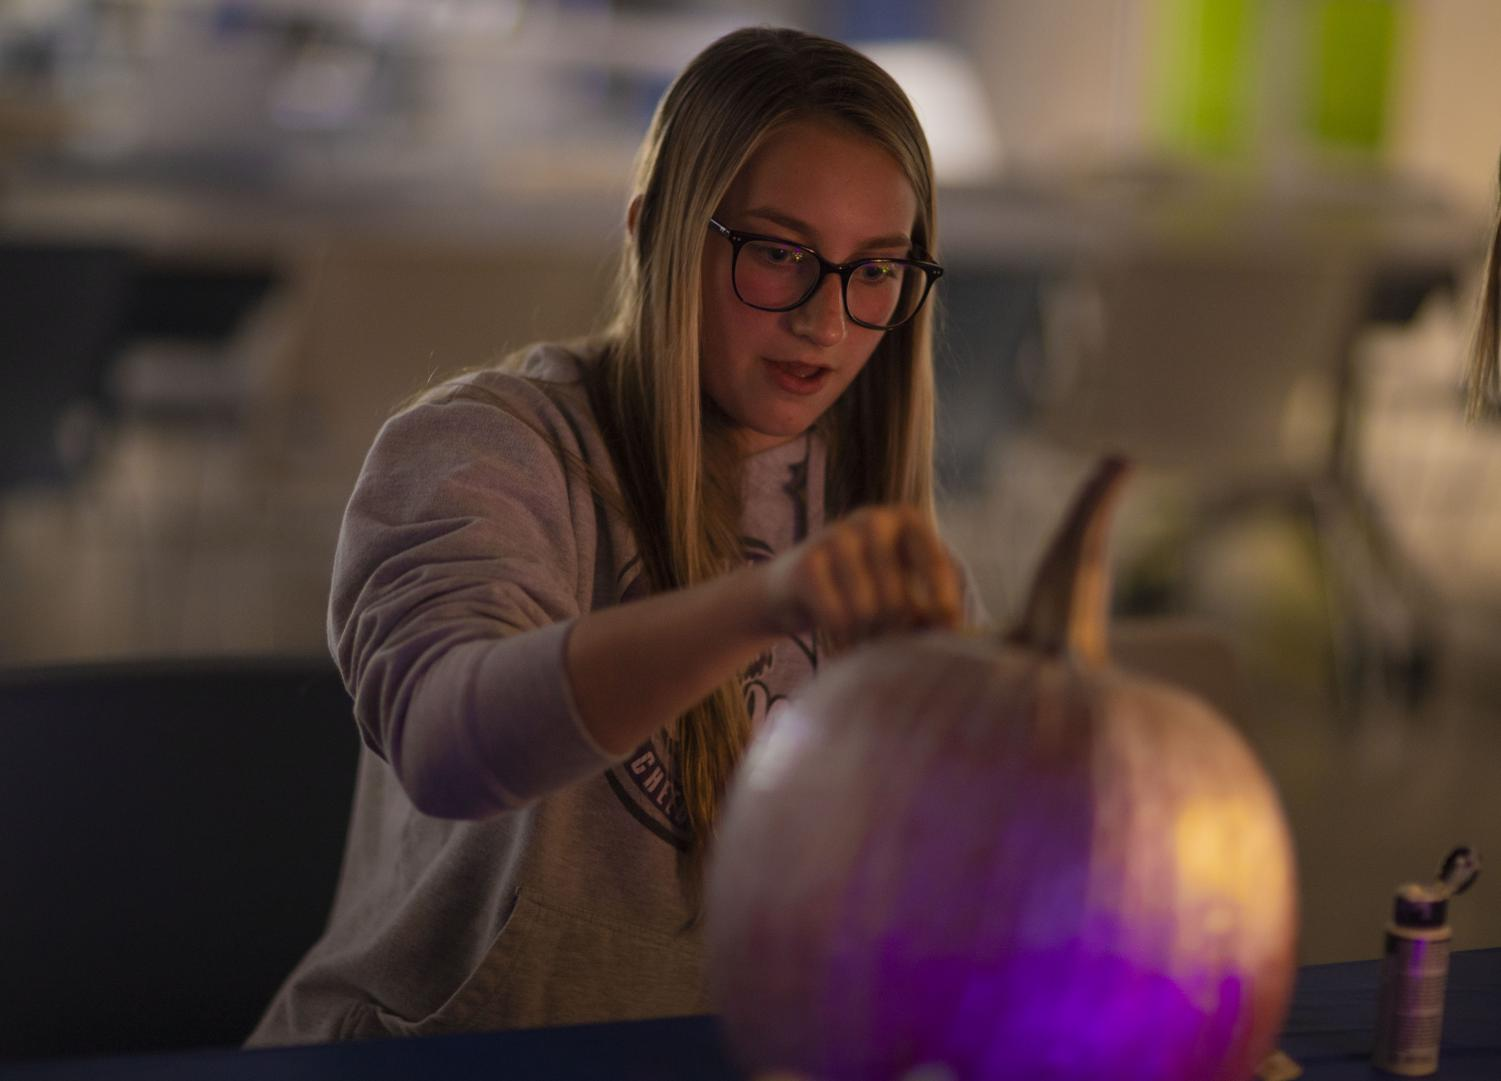 Sophomore Kaitlyn McDonald focuses in on her pumpkin at the Oct. 26 pumpkin painting party for the JV Cheerleaders.